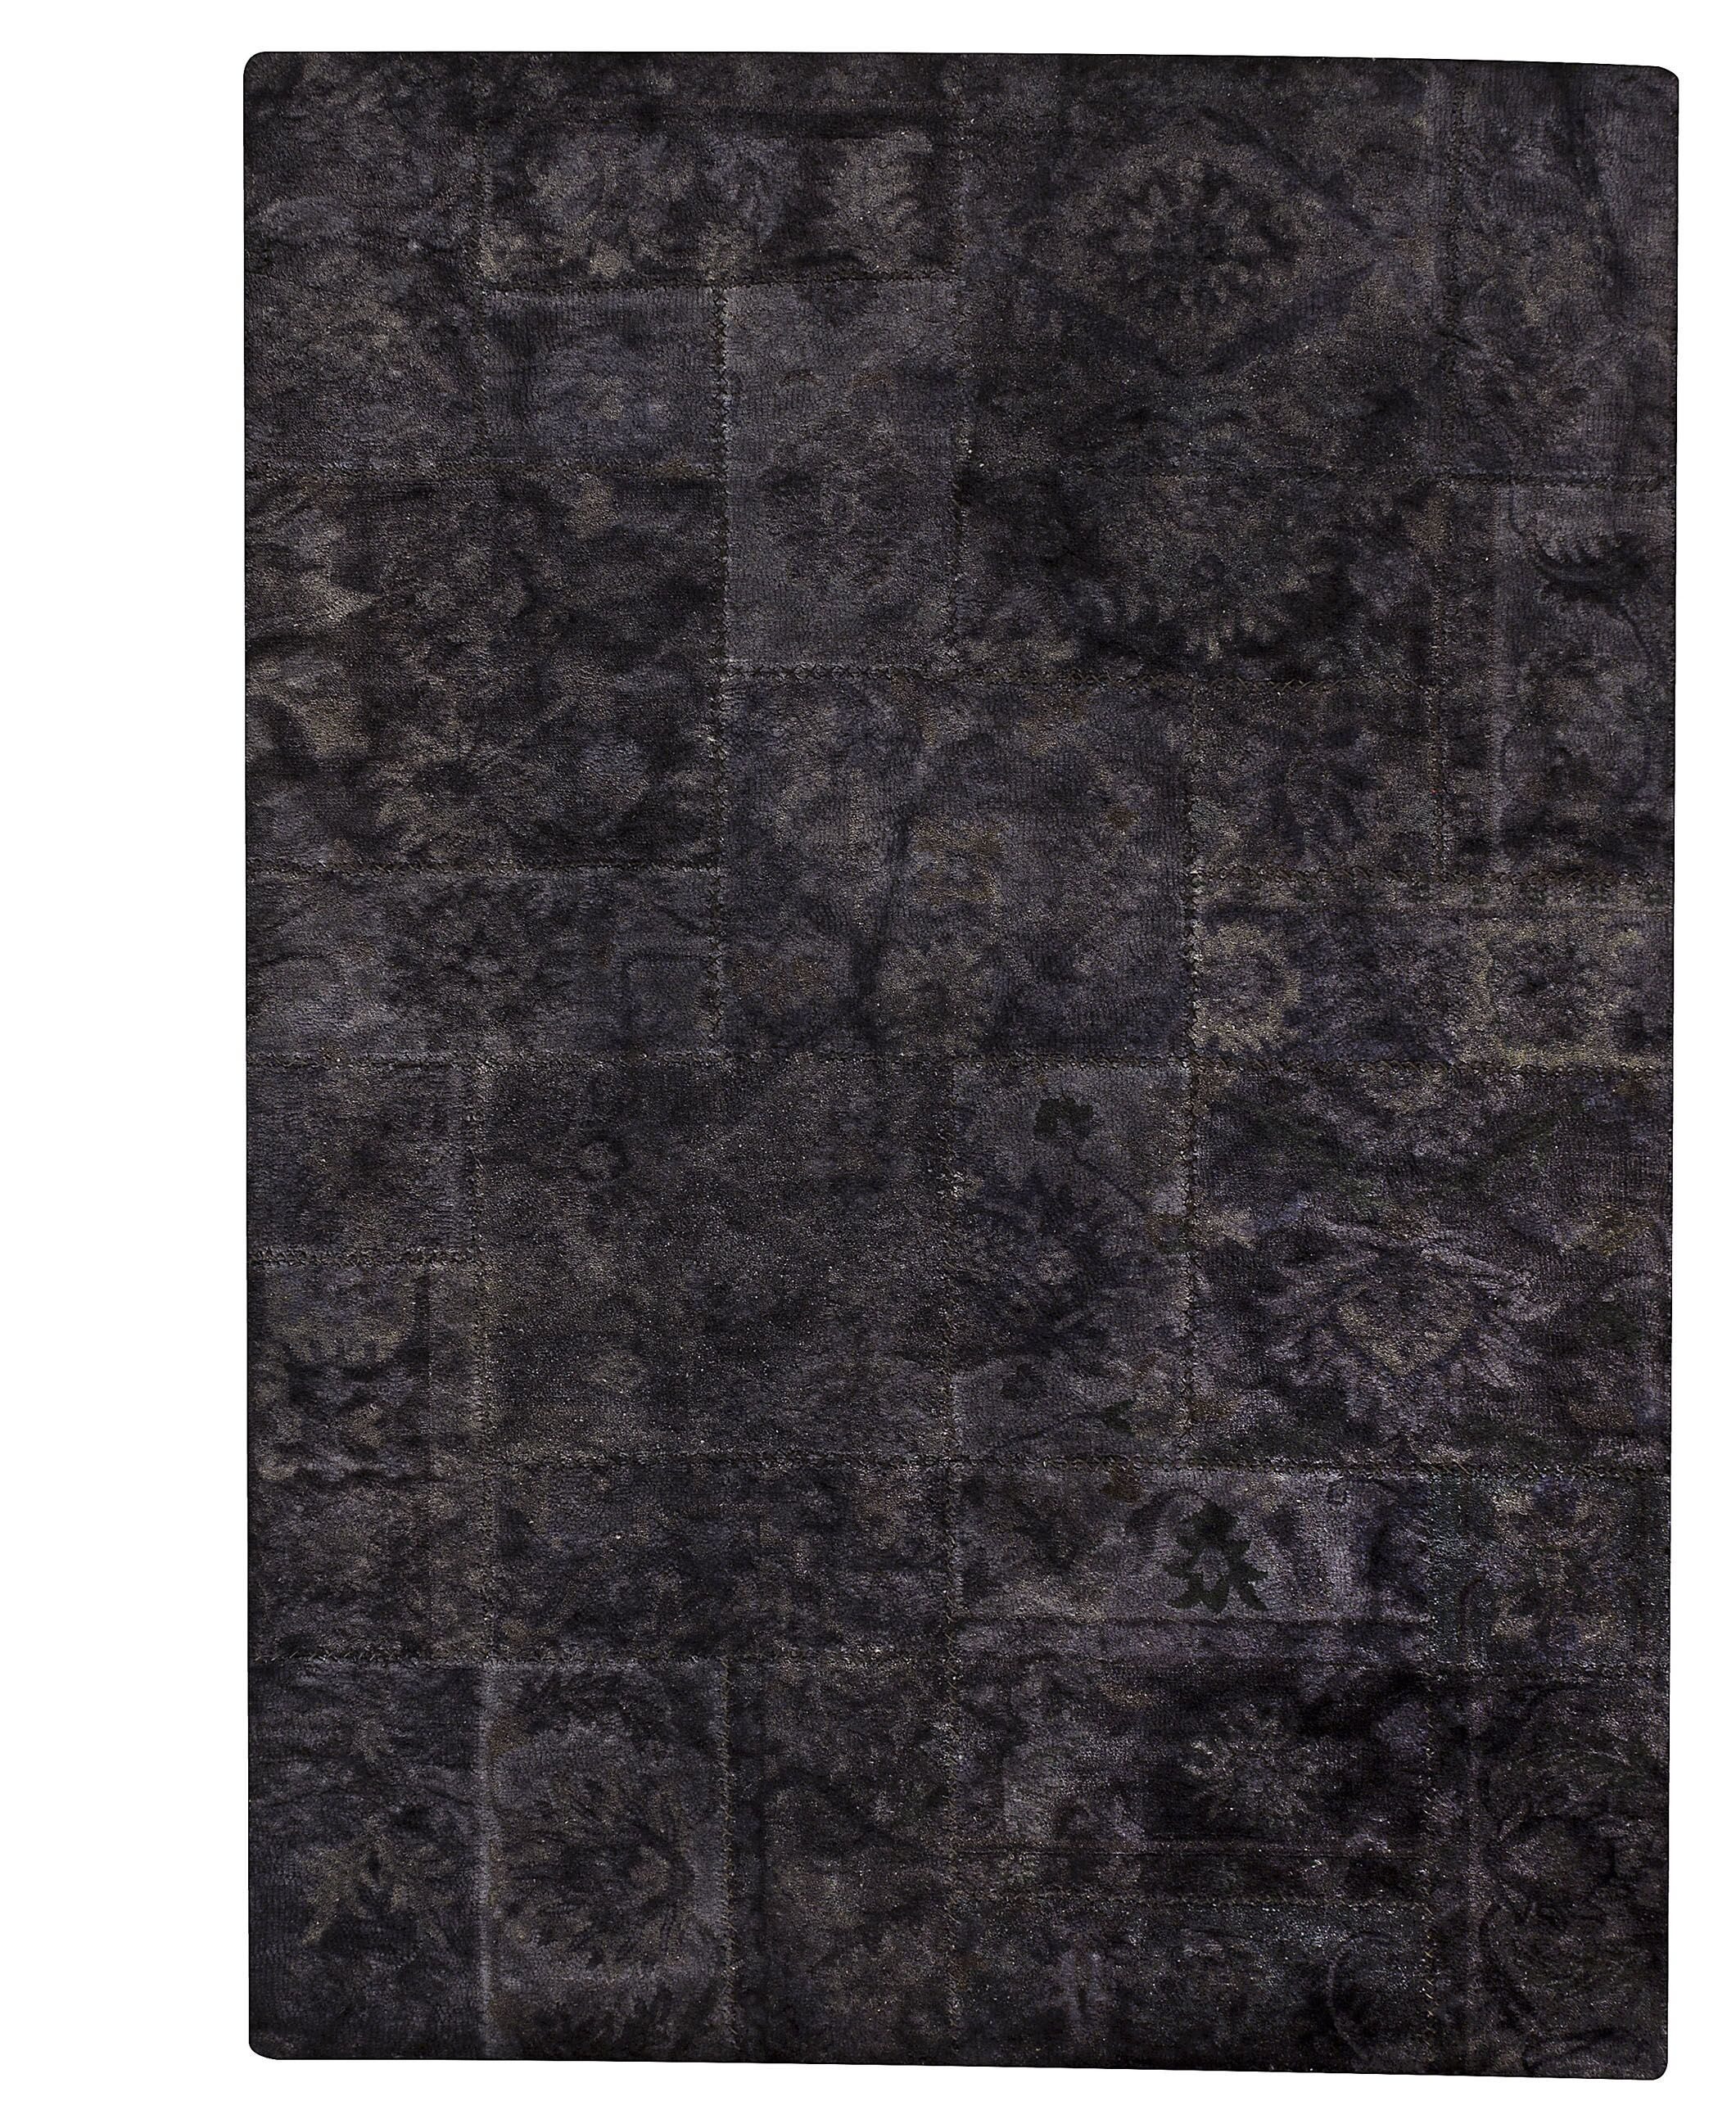 Sarangi Hand-Tufted Wool Black Area Rug Rug Size: Rectangle5'2